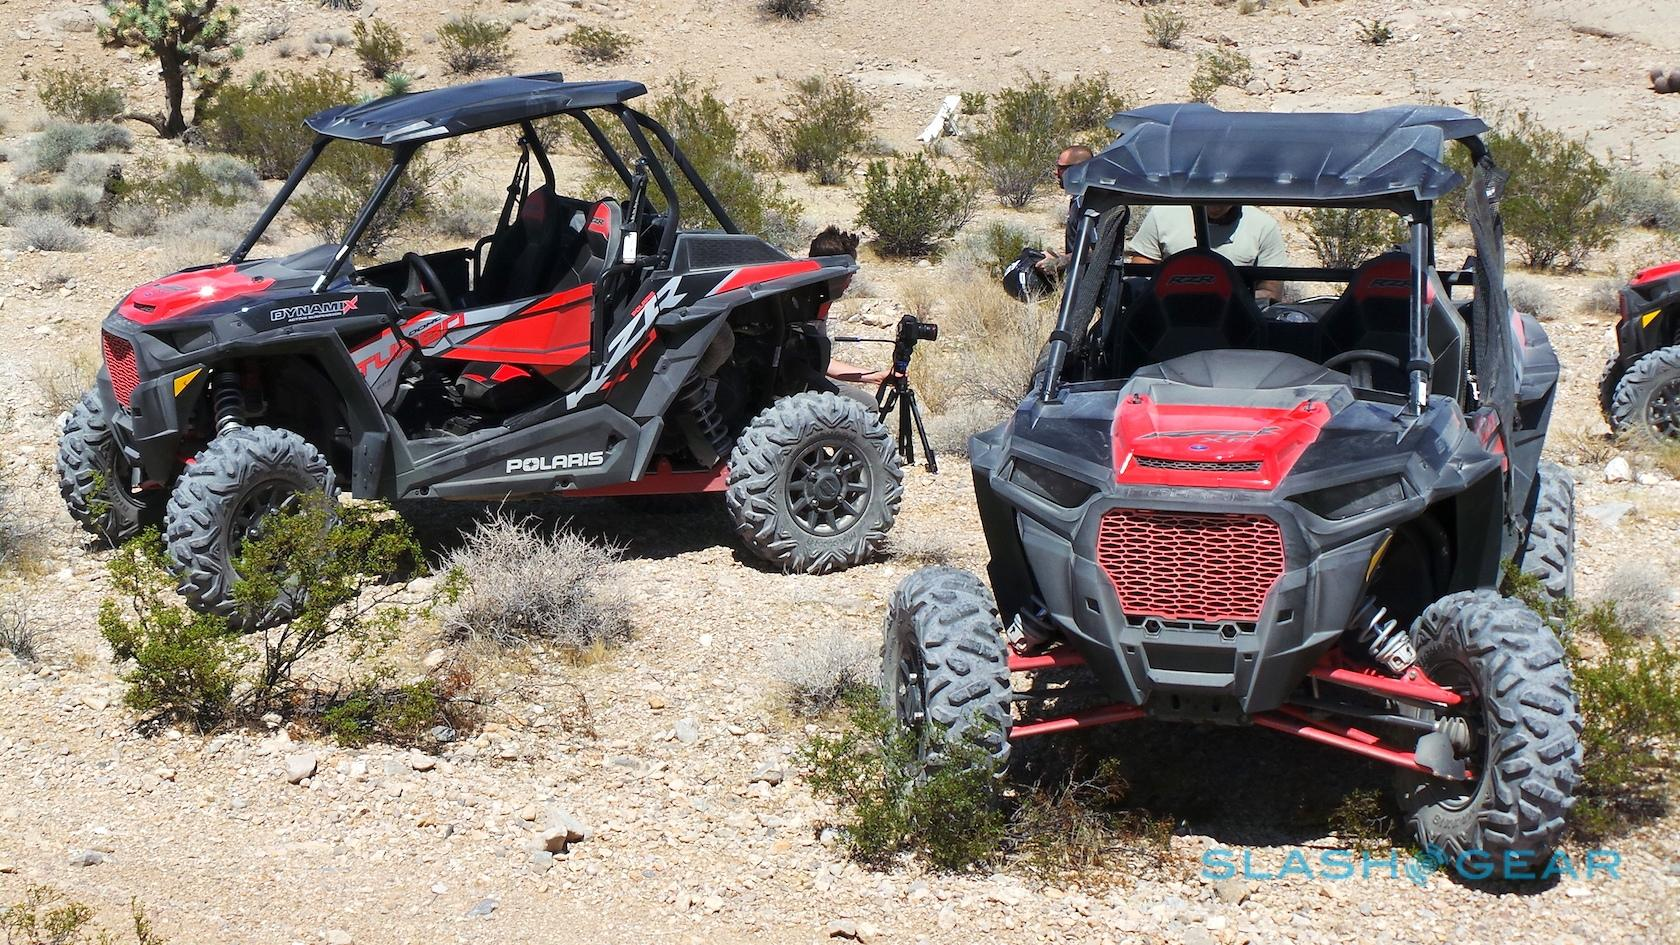 2018 Polaris RZR Dynamix First Drive: Off-road witchcraft - SlashGear